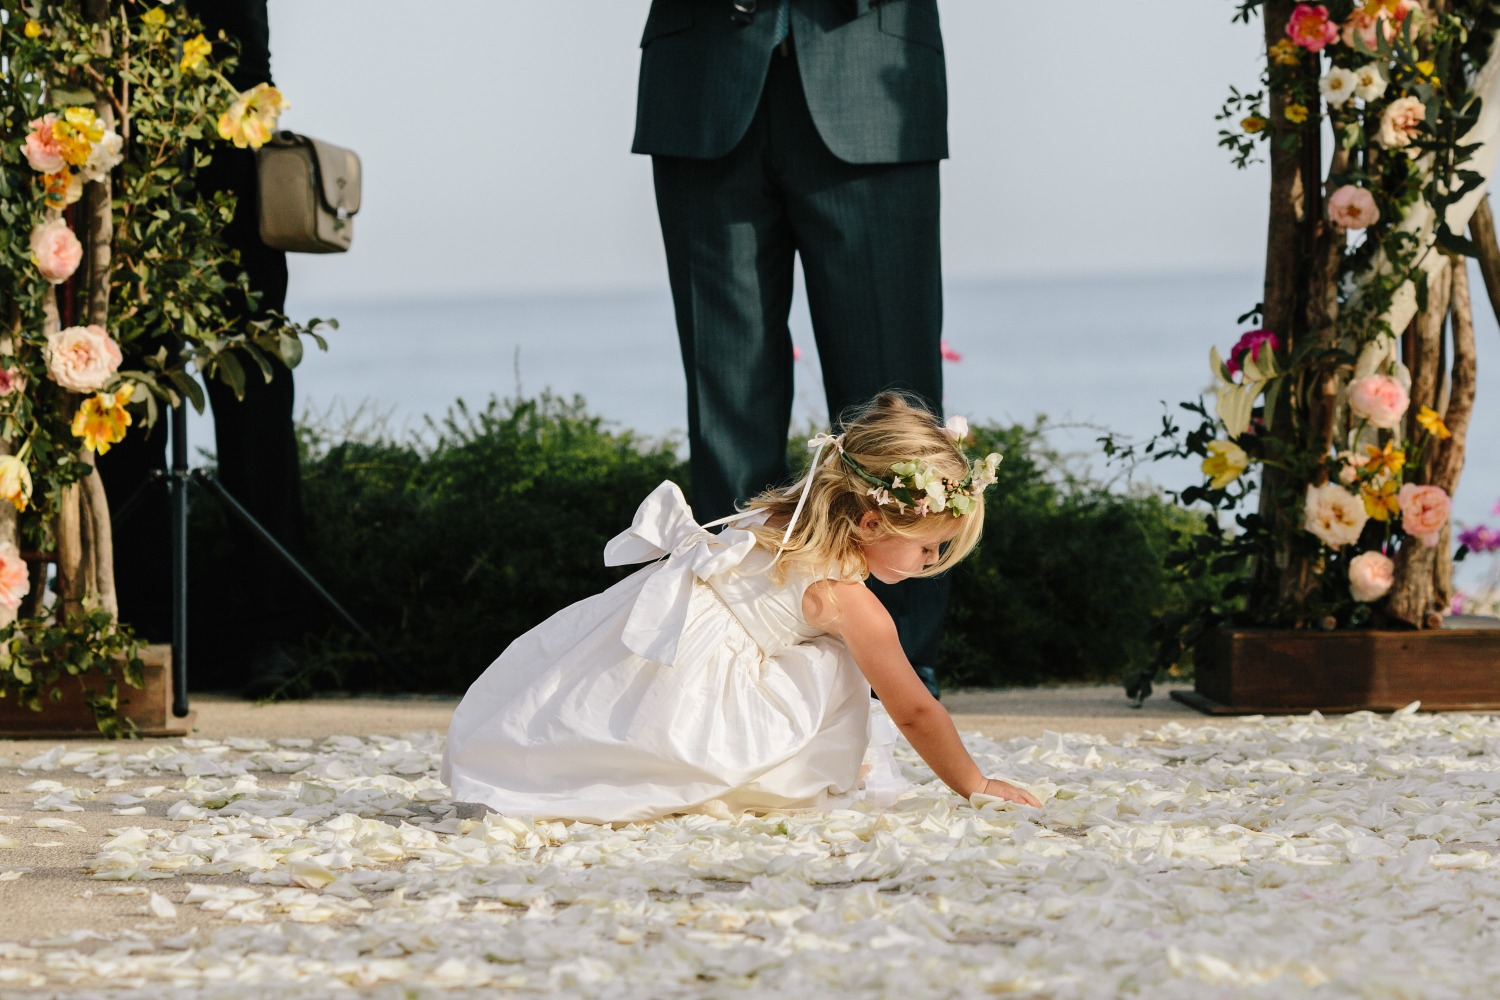 flower girl playing with the flower petals